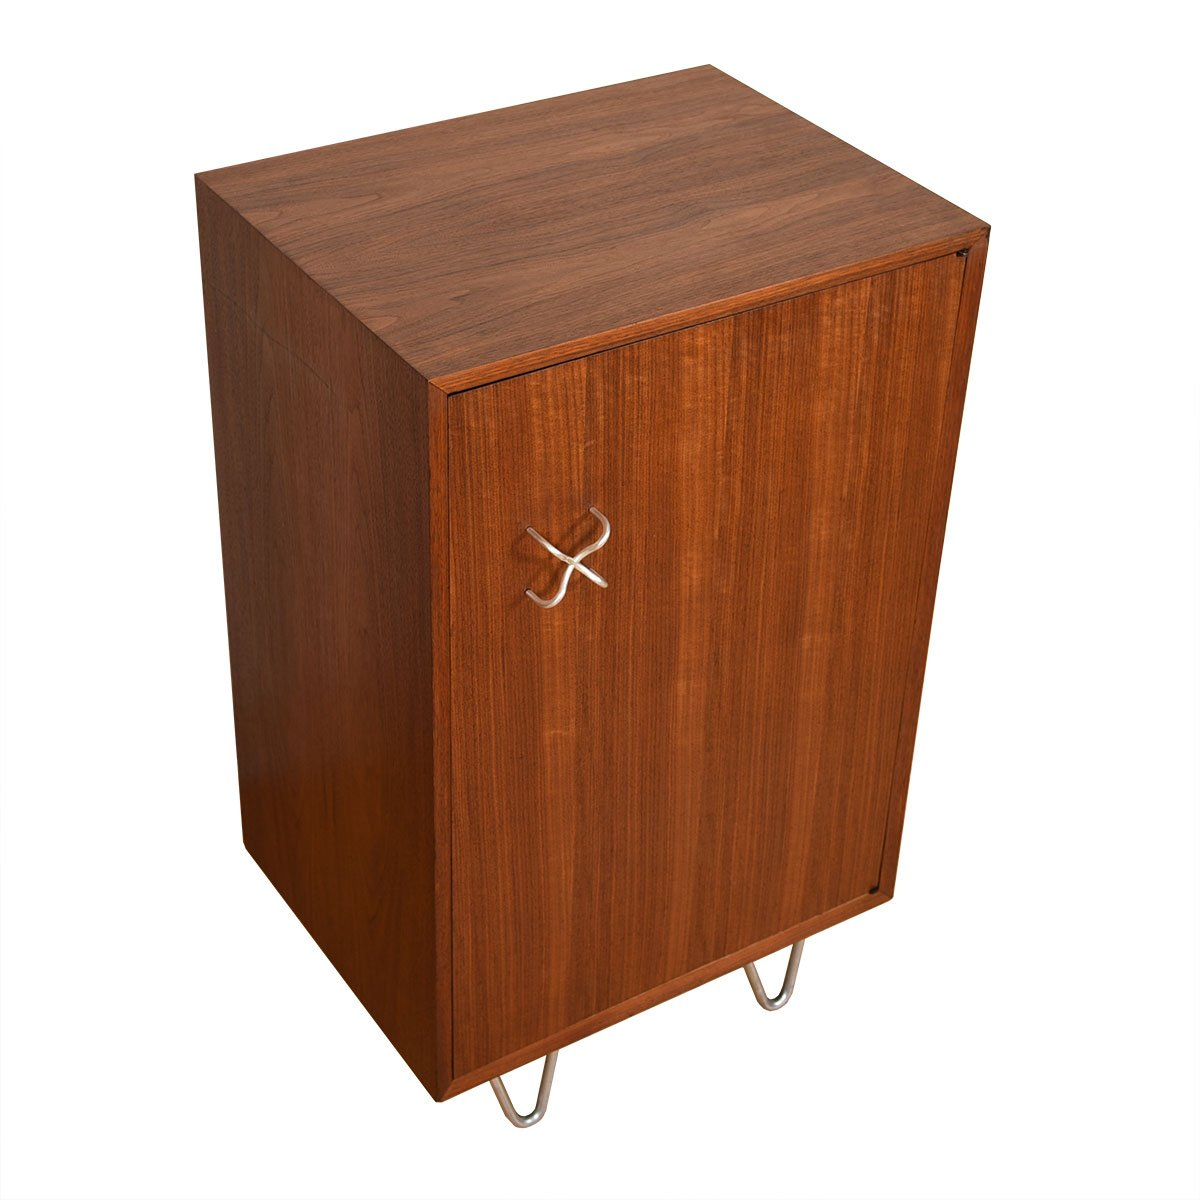 Herman Miller Walnut Bar / Storage Cabinet with Hairpin Legs.